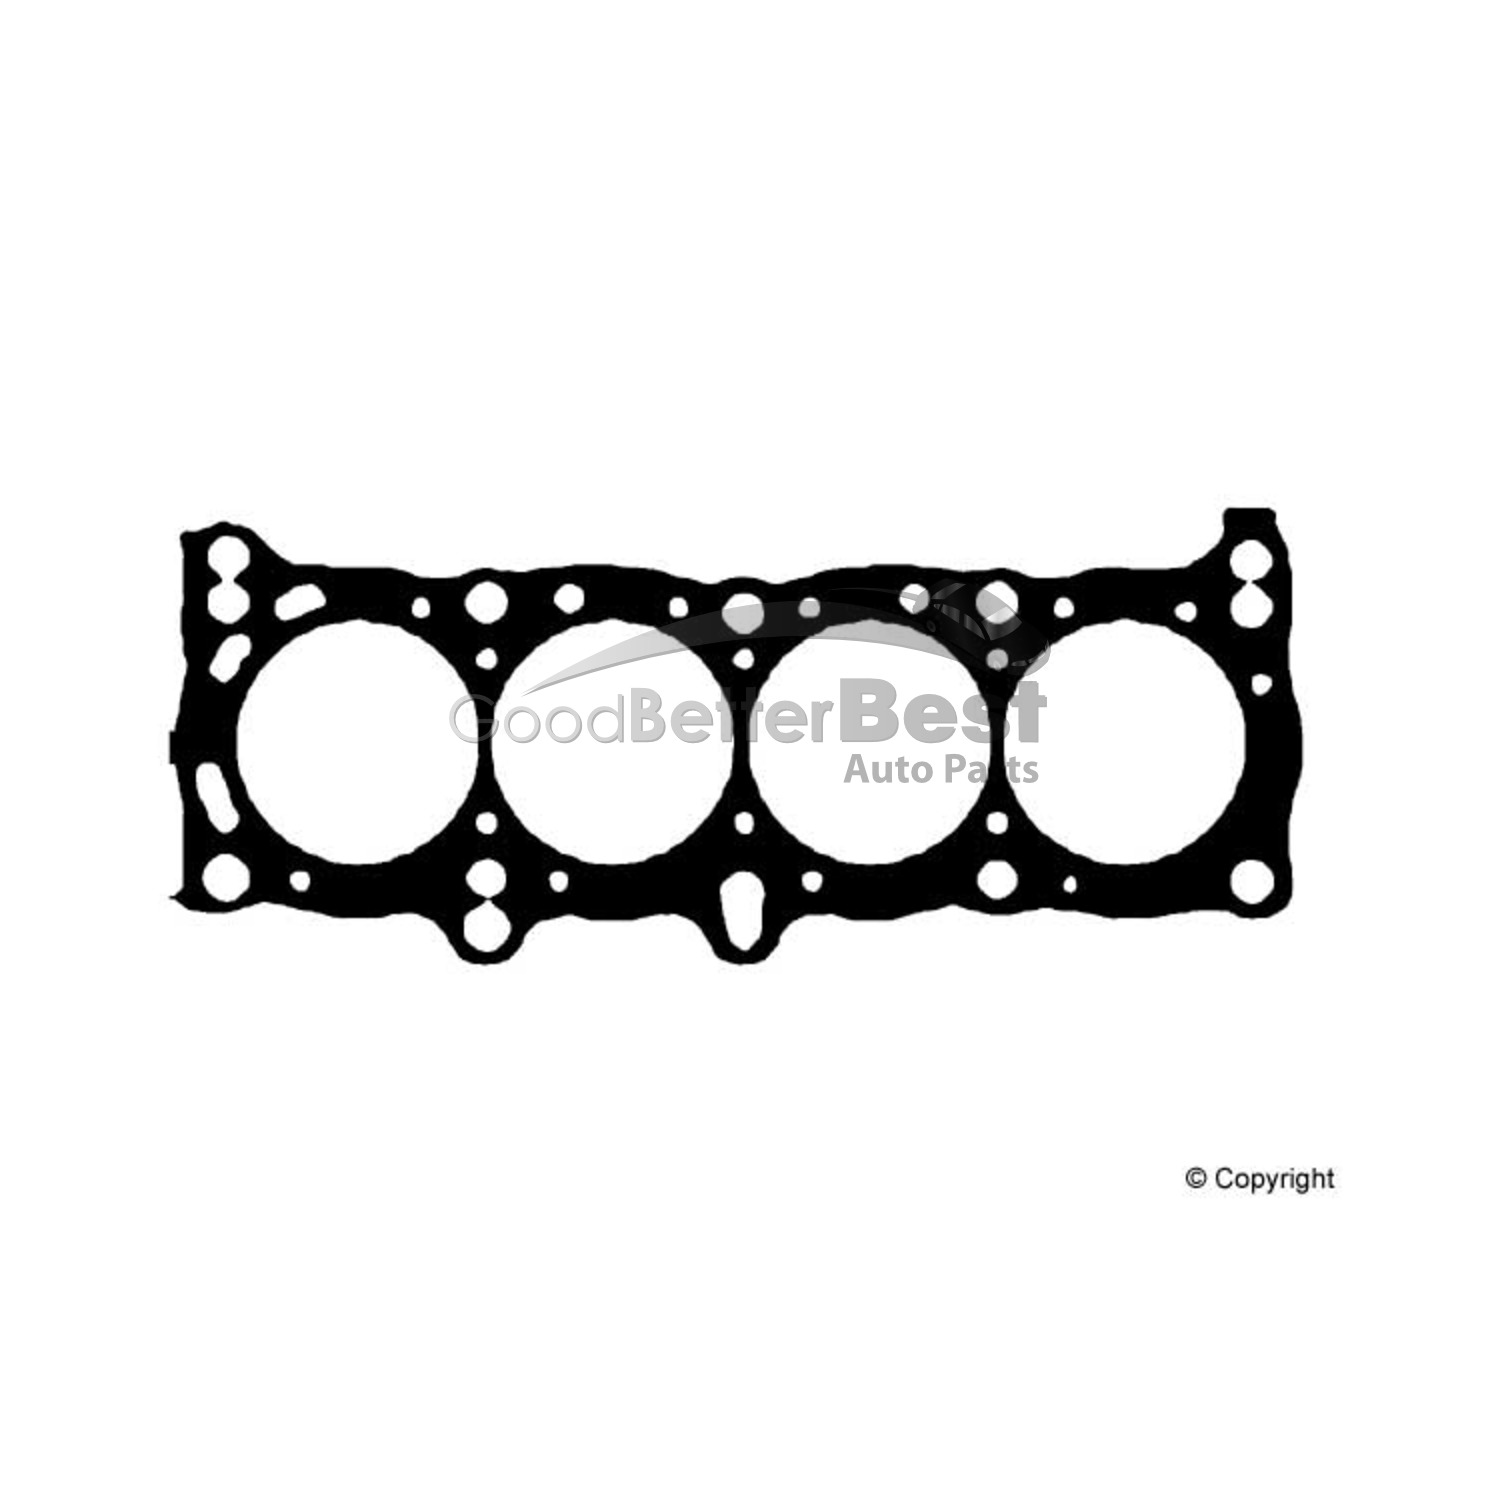 New Stone Engine Cylinder Head Gasket Ja Ph